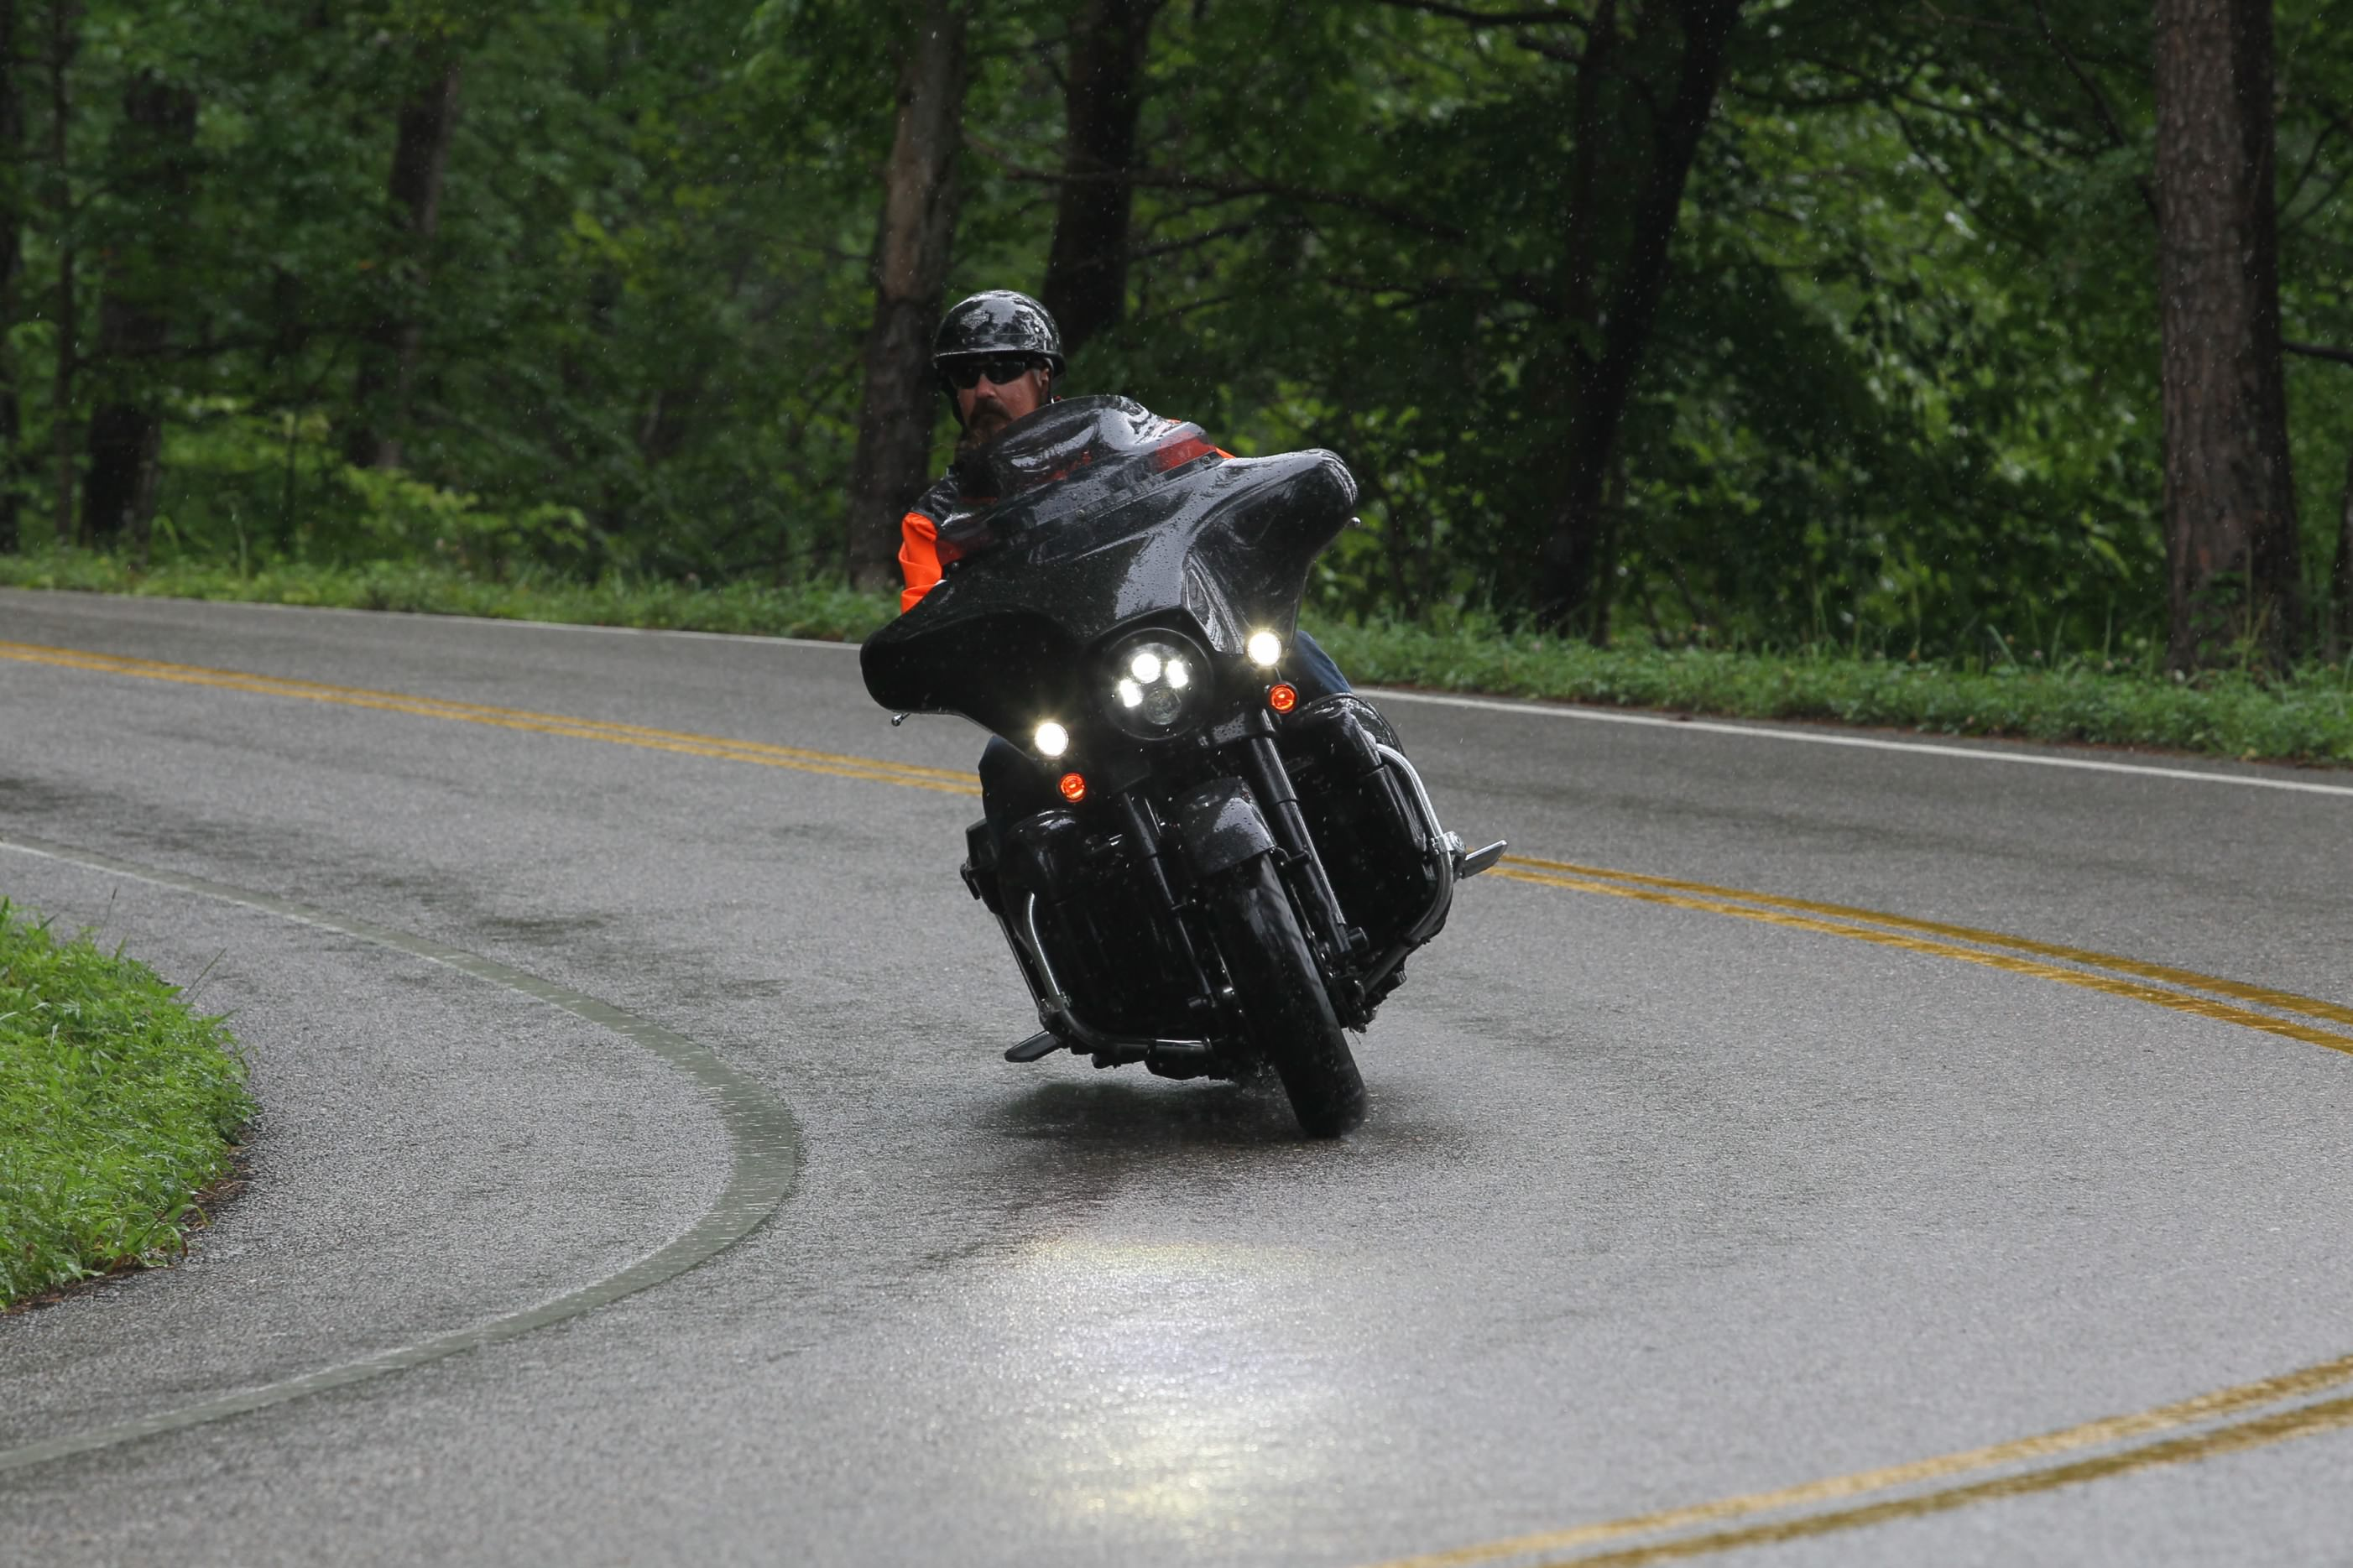 9 Tips For Staying Safe On A Motorcycle